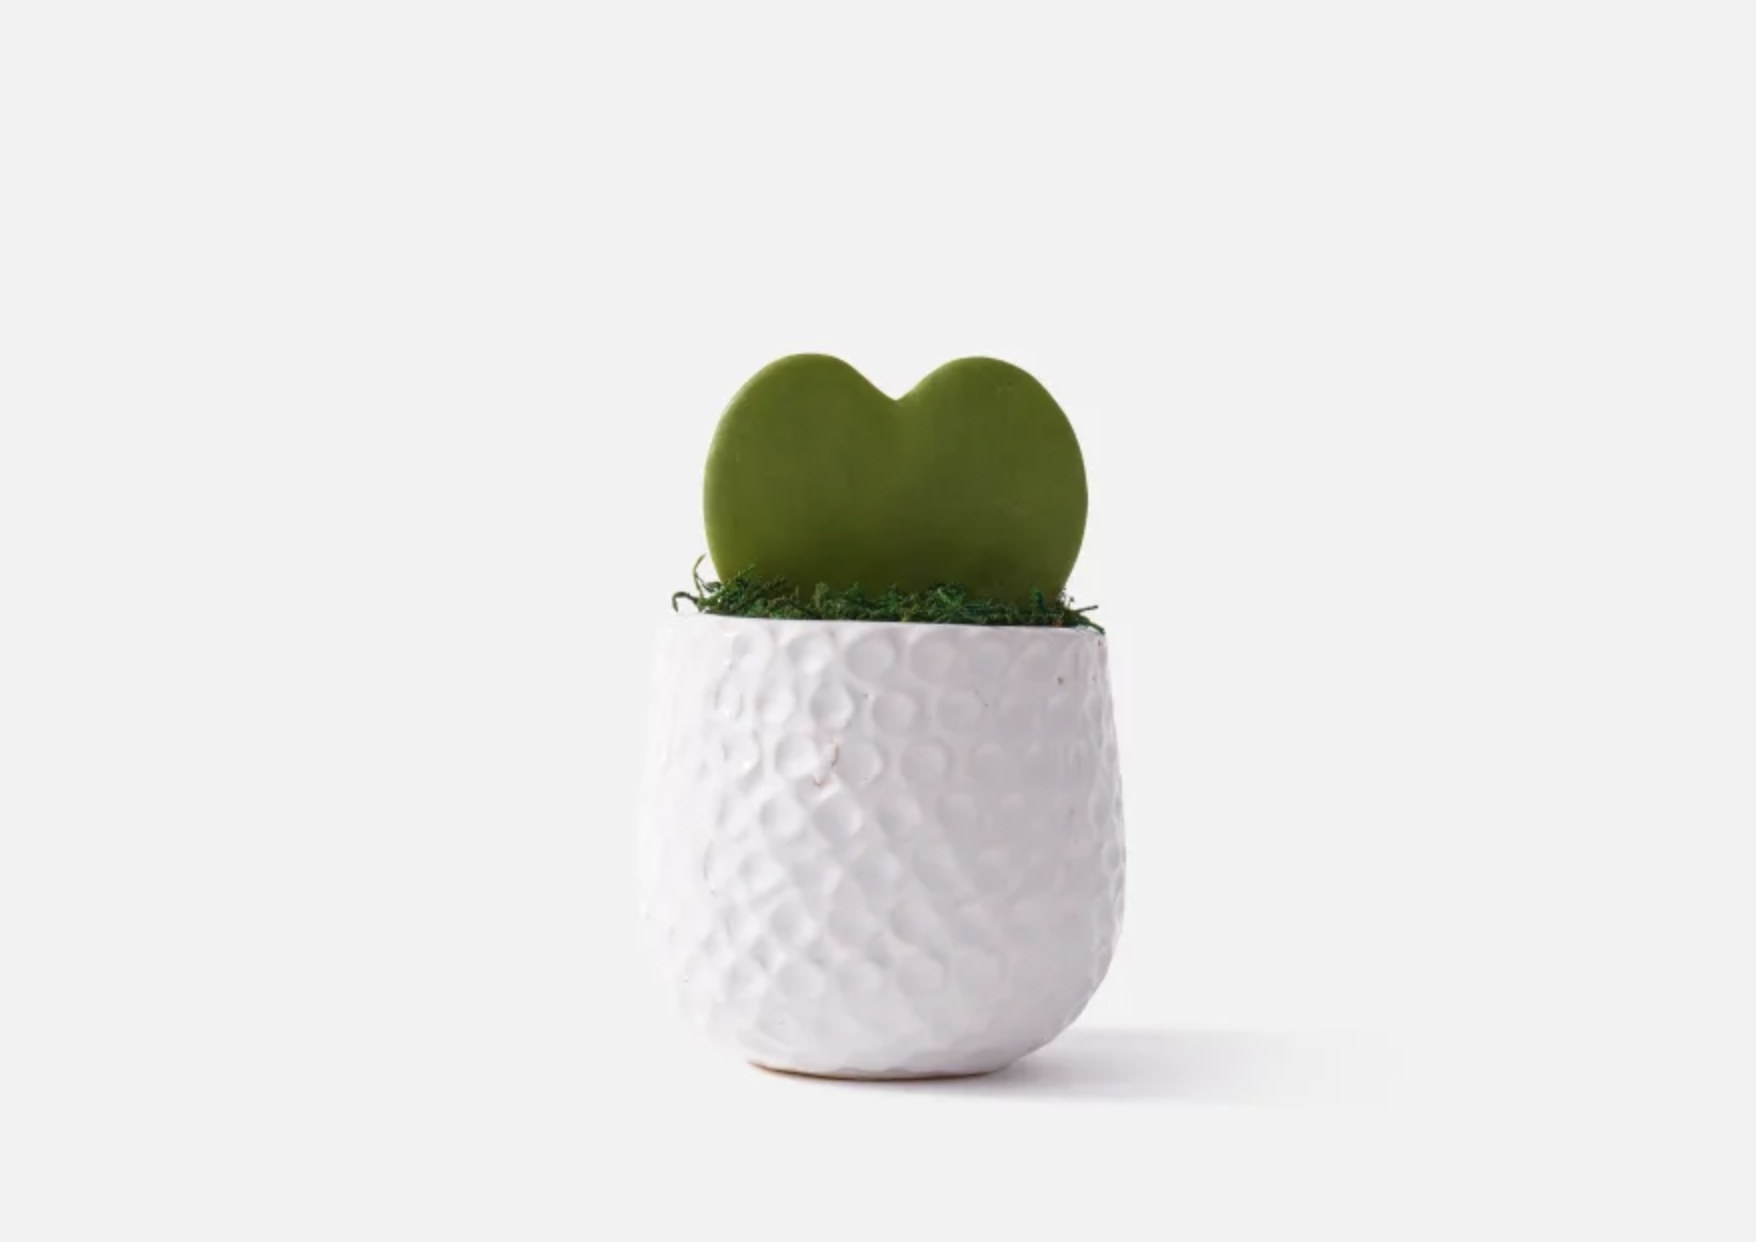 the heart-shaped succulent in a white vase